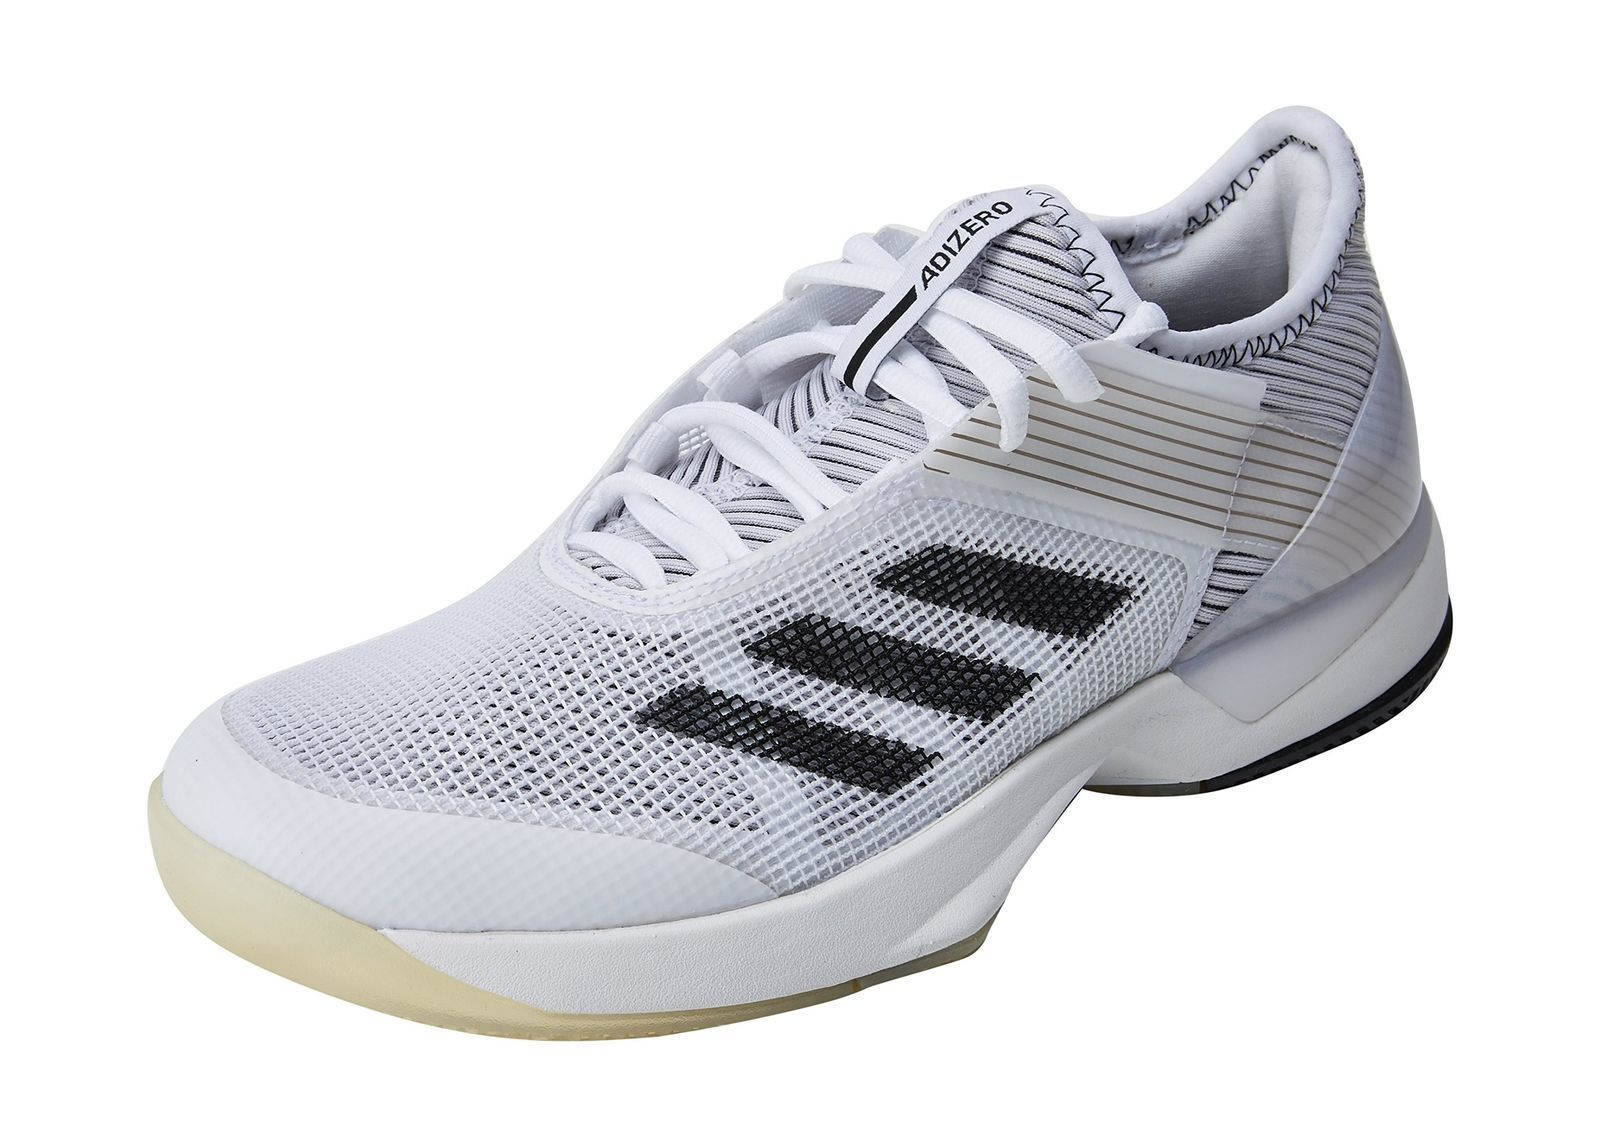 adidas Womens Adizero Ubersonic 3 Tennis Shoes 3.5 UK